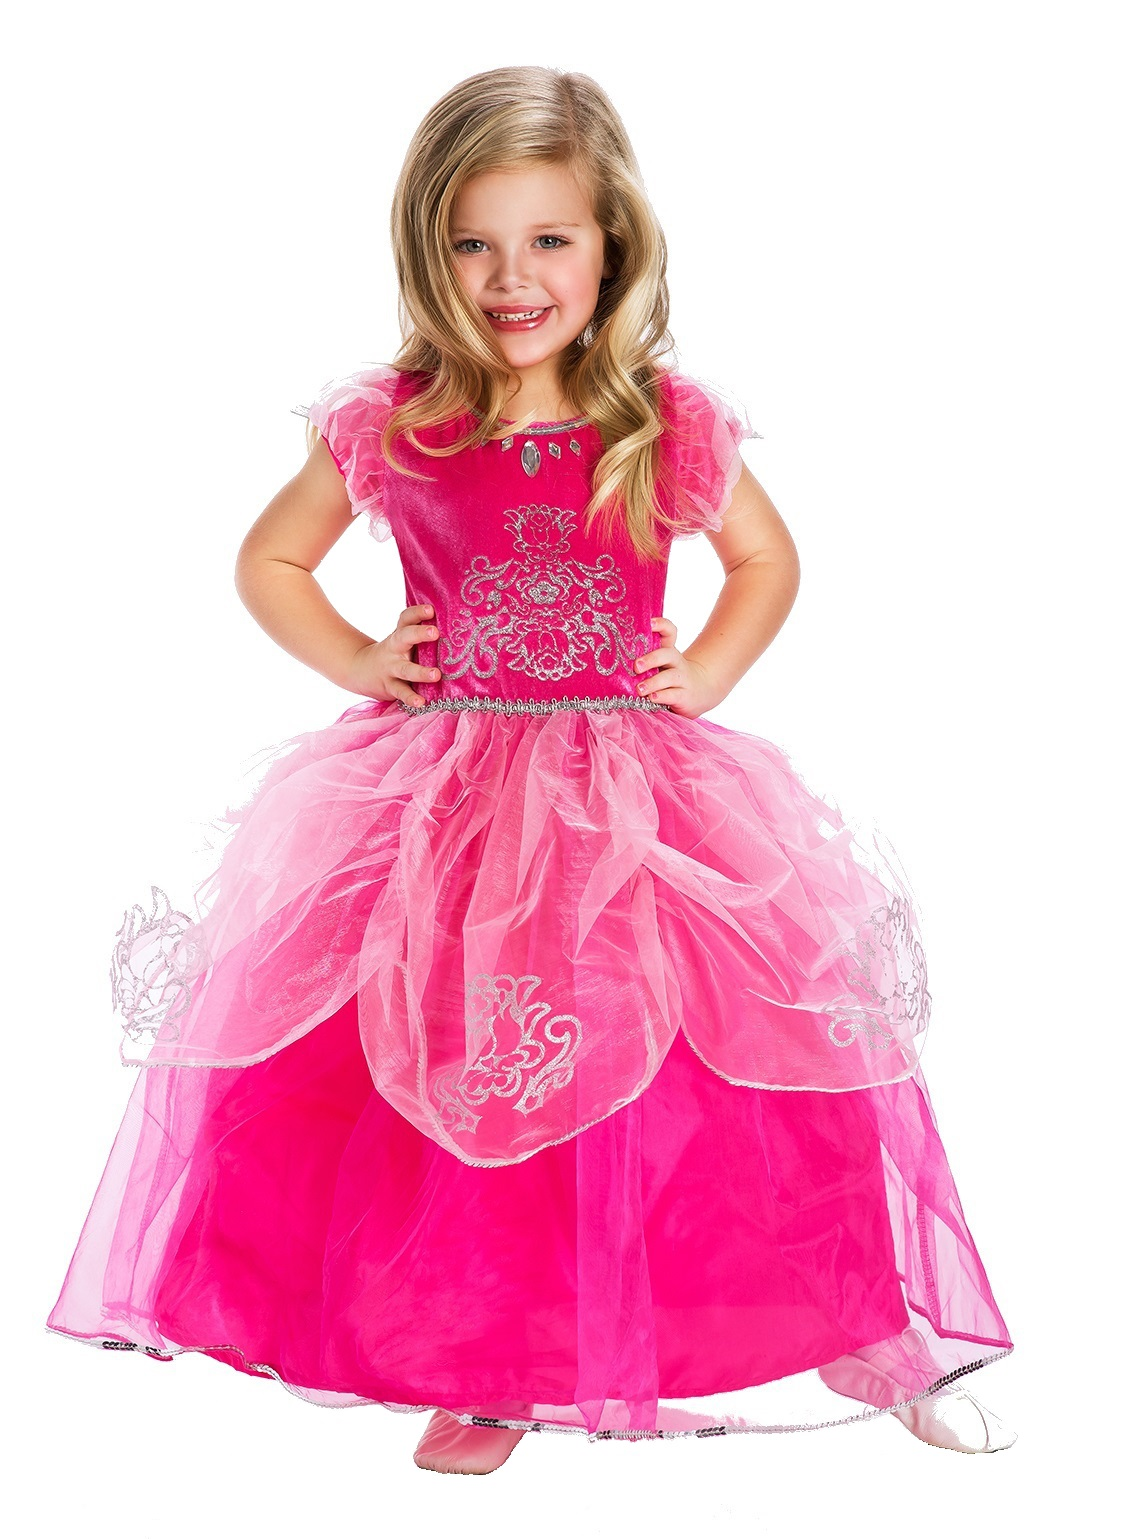 Princess Allie Dress